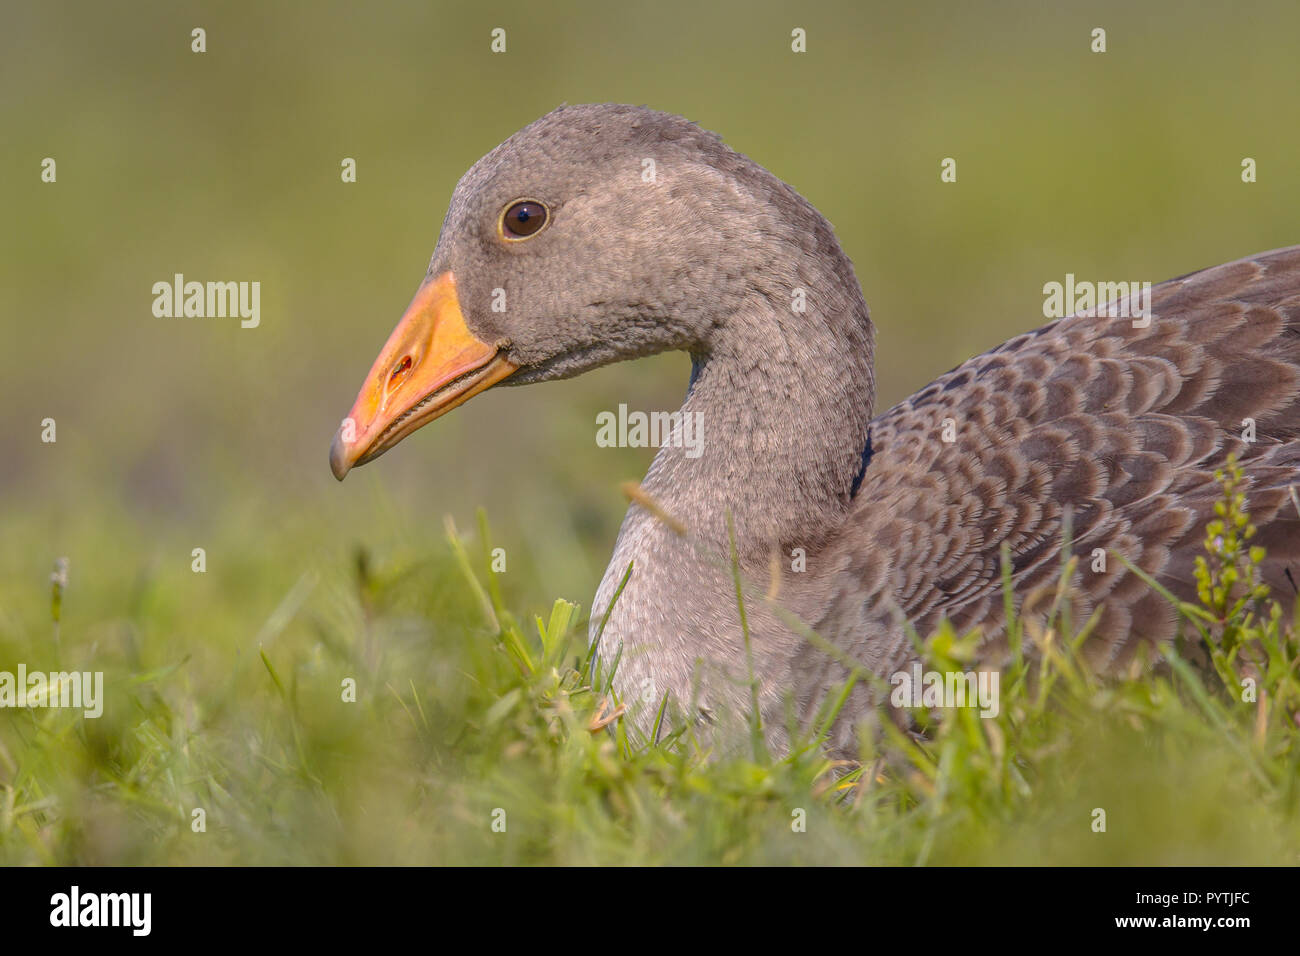 Greylag goose (Anser anser) bird lying in grass. This species has a Palearctic distribution and breeds in Europe and North Asia. - Stock Image